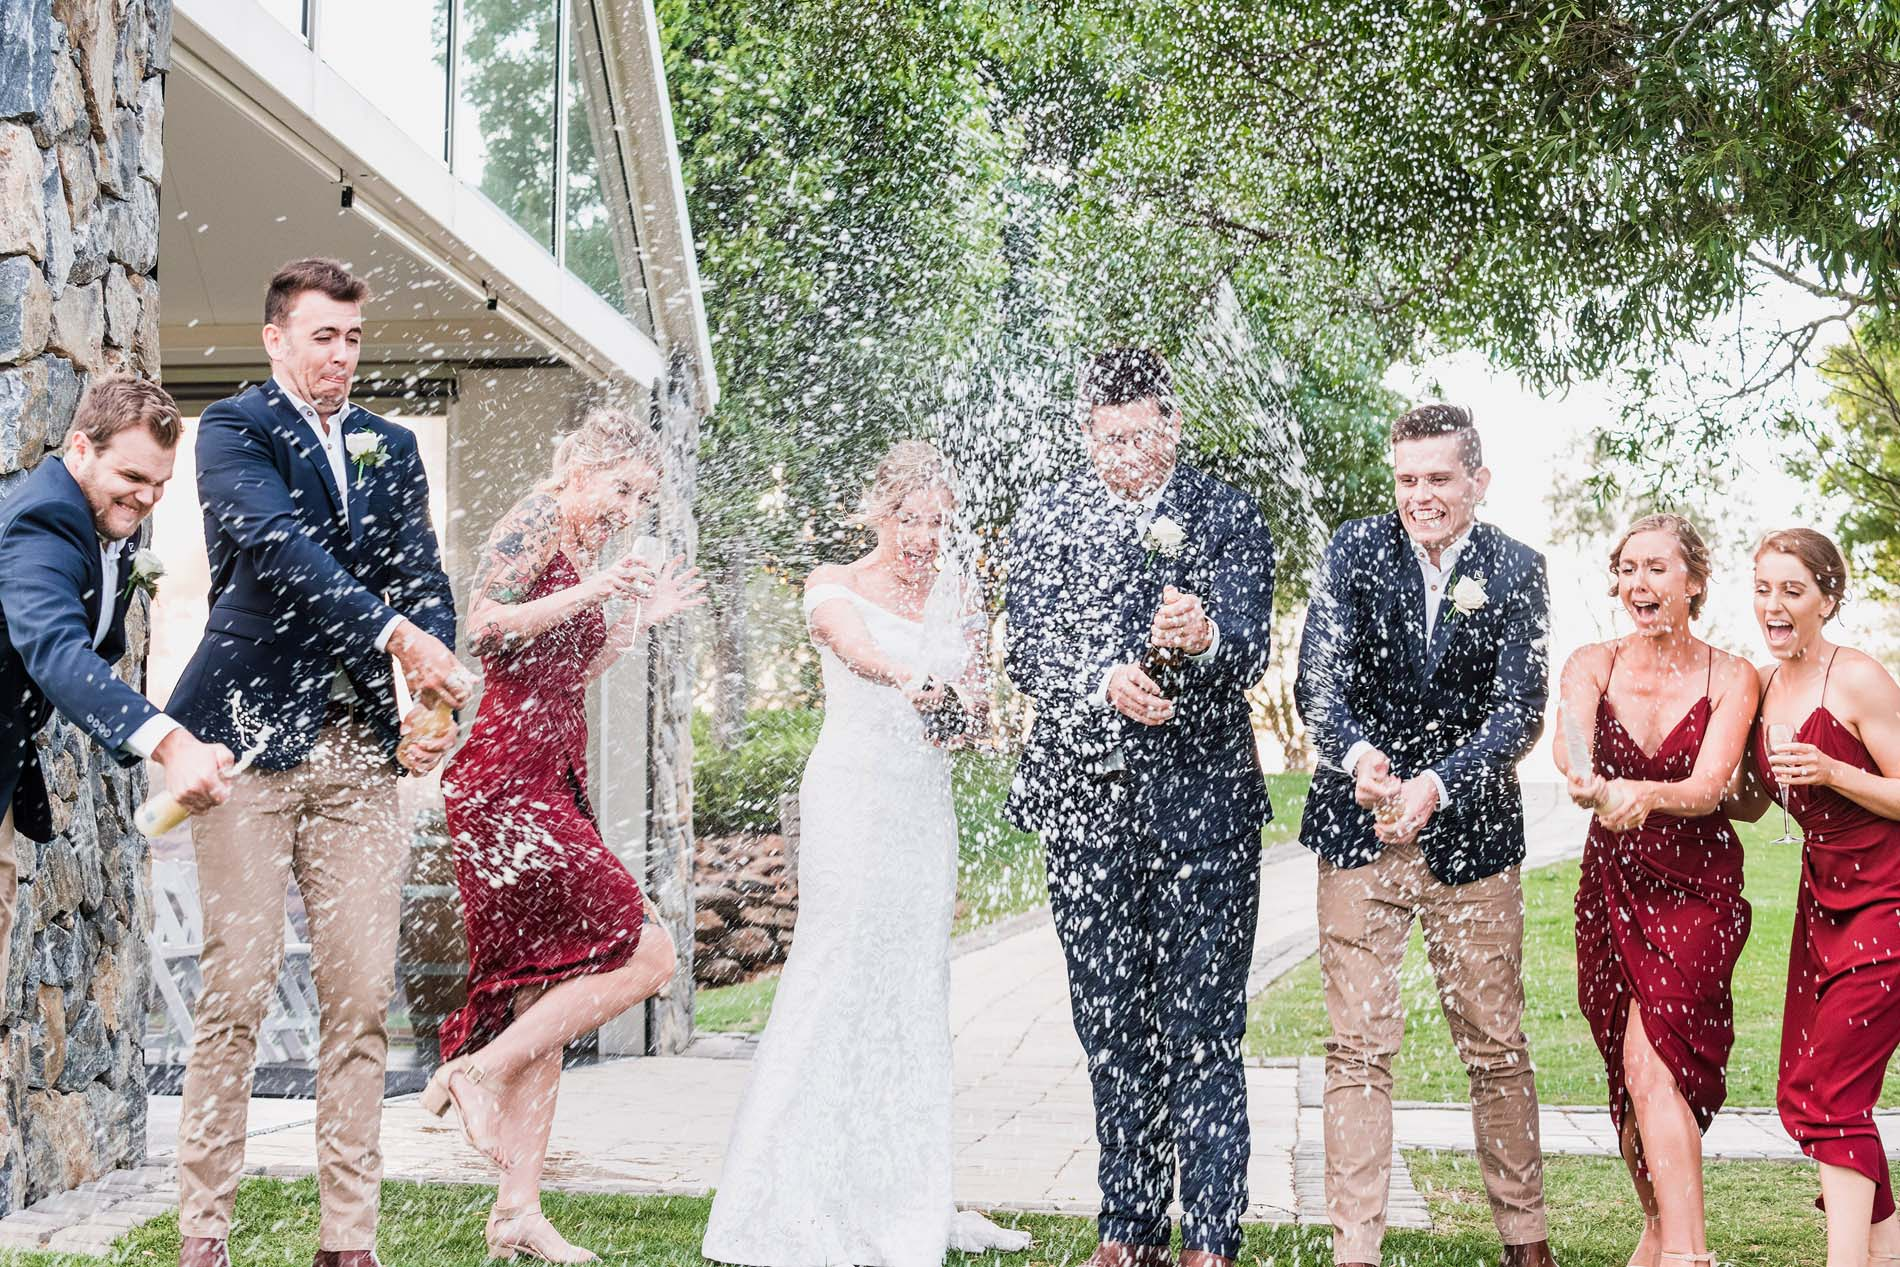 181206 1149 crazy bridal party photo mad champagne showers wild